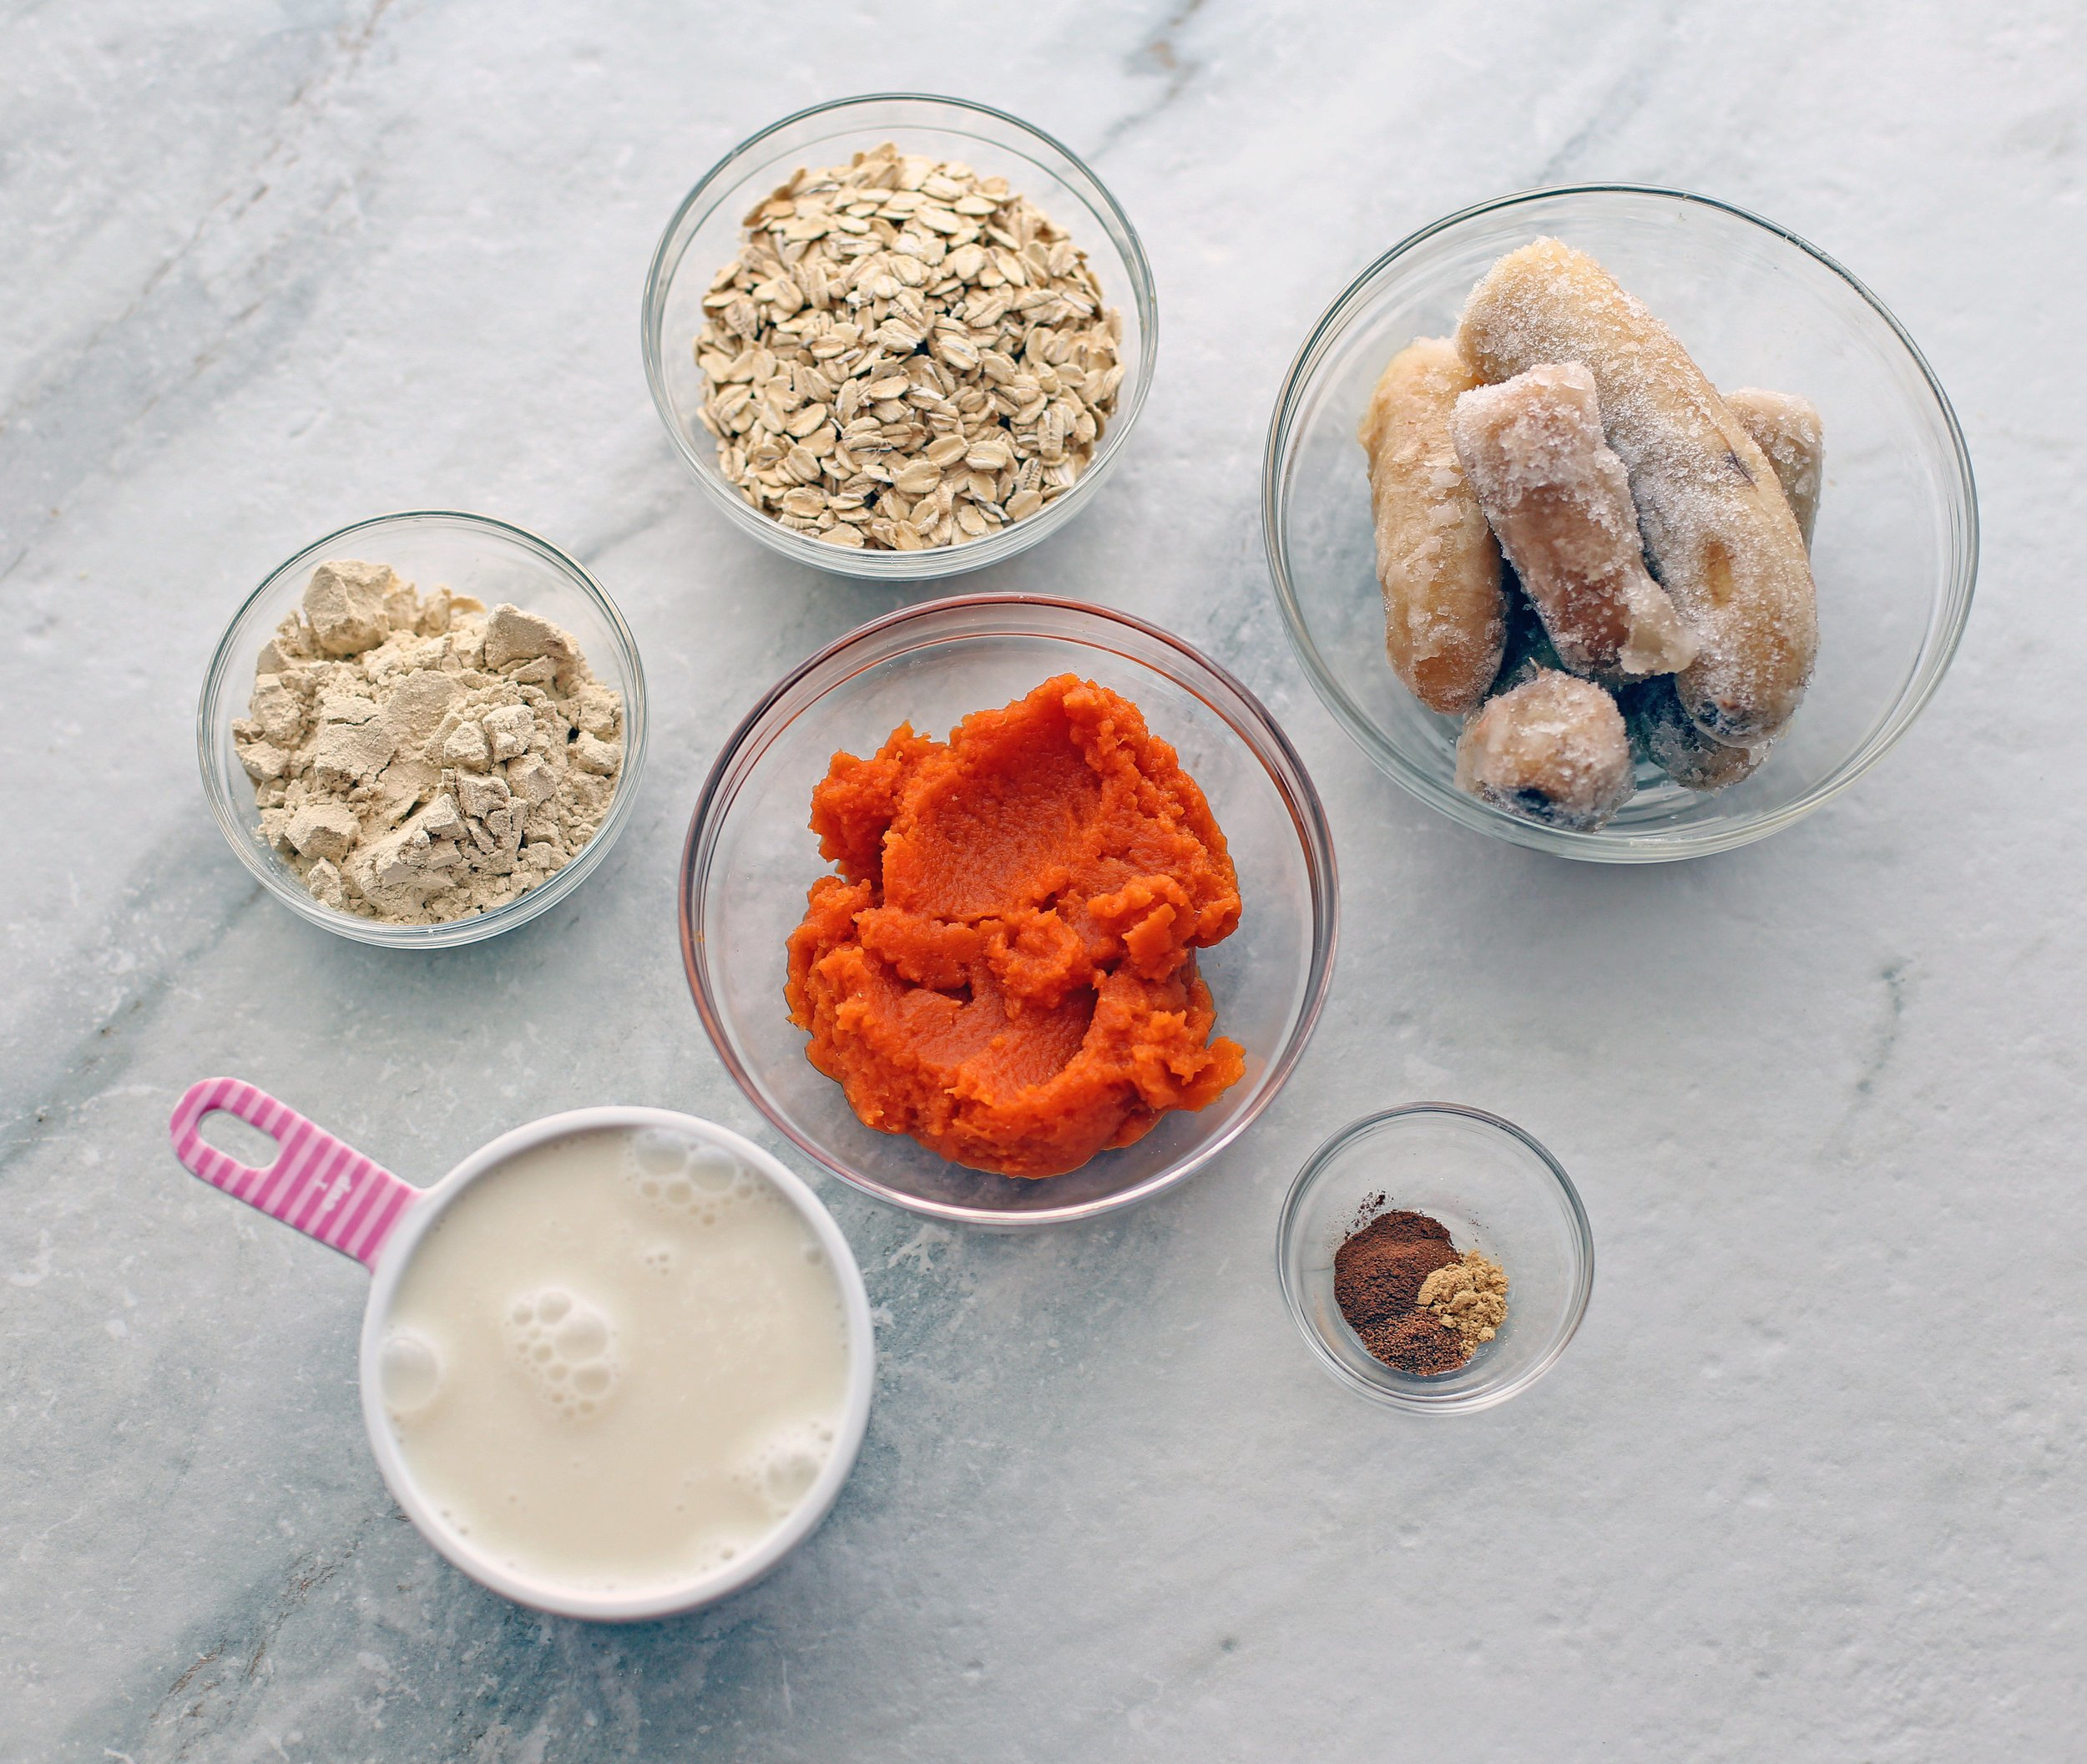 Overhead view of almond milk, pumpkin puree, frozen banana, spices, protein powder, and oatmeal.